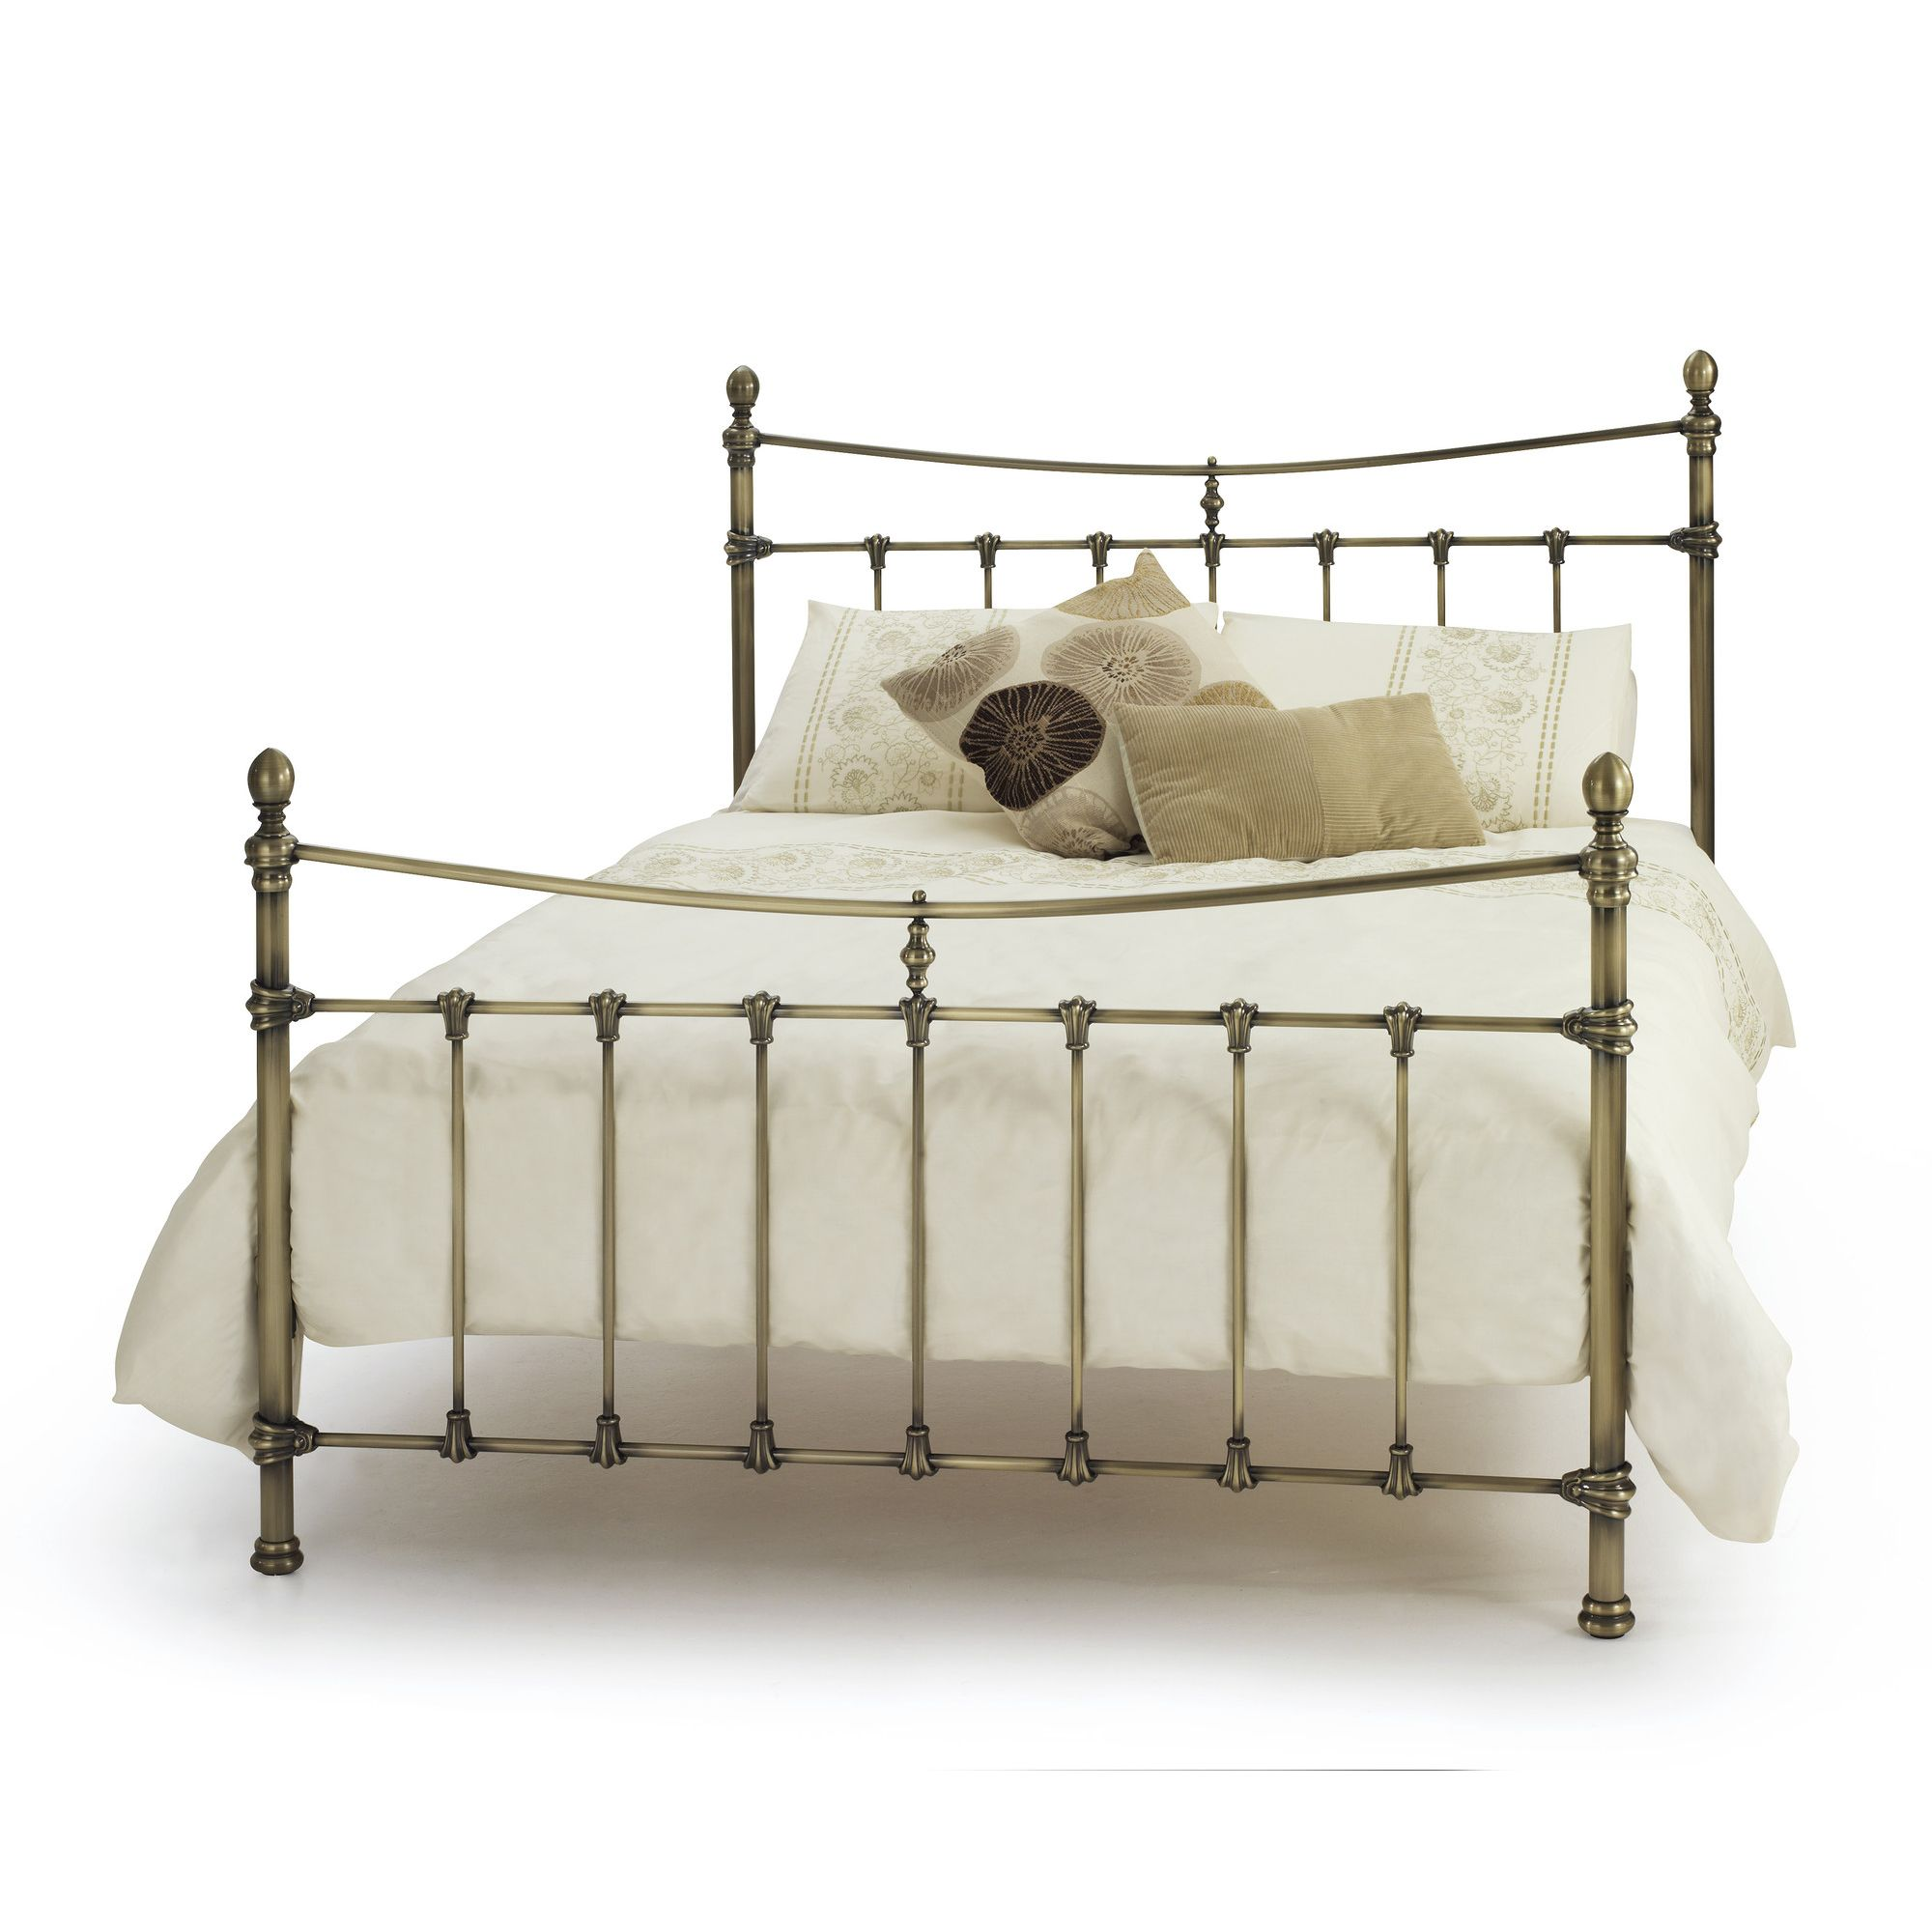 Serene Furnishings Olivia Bed Frame - Double at Tesco Direct